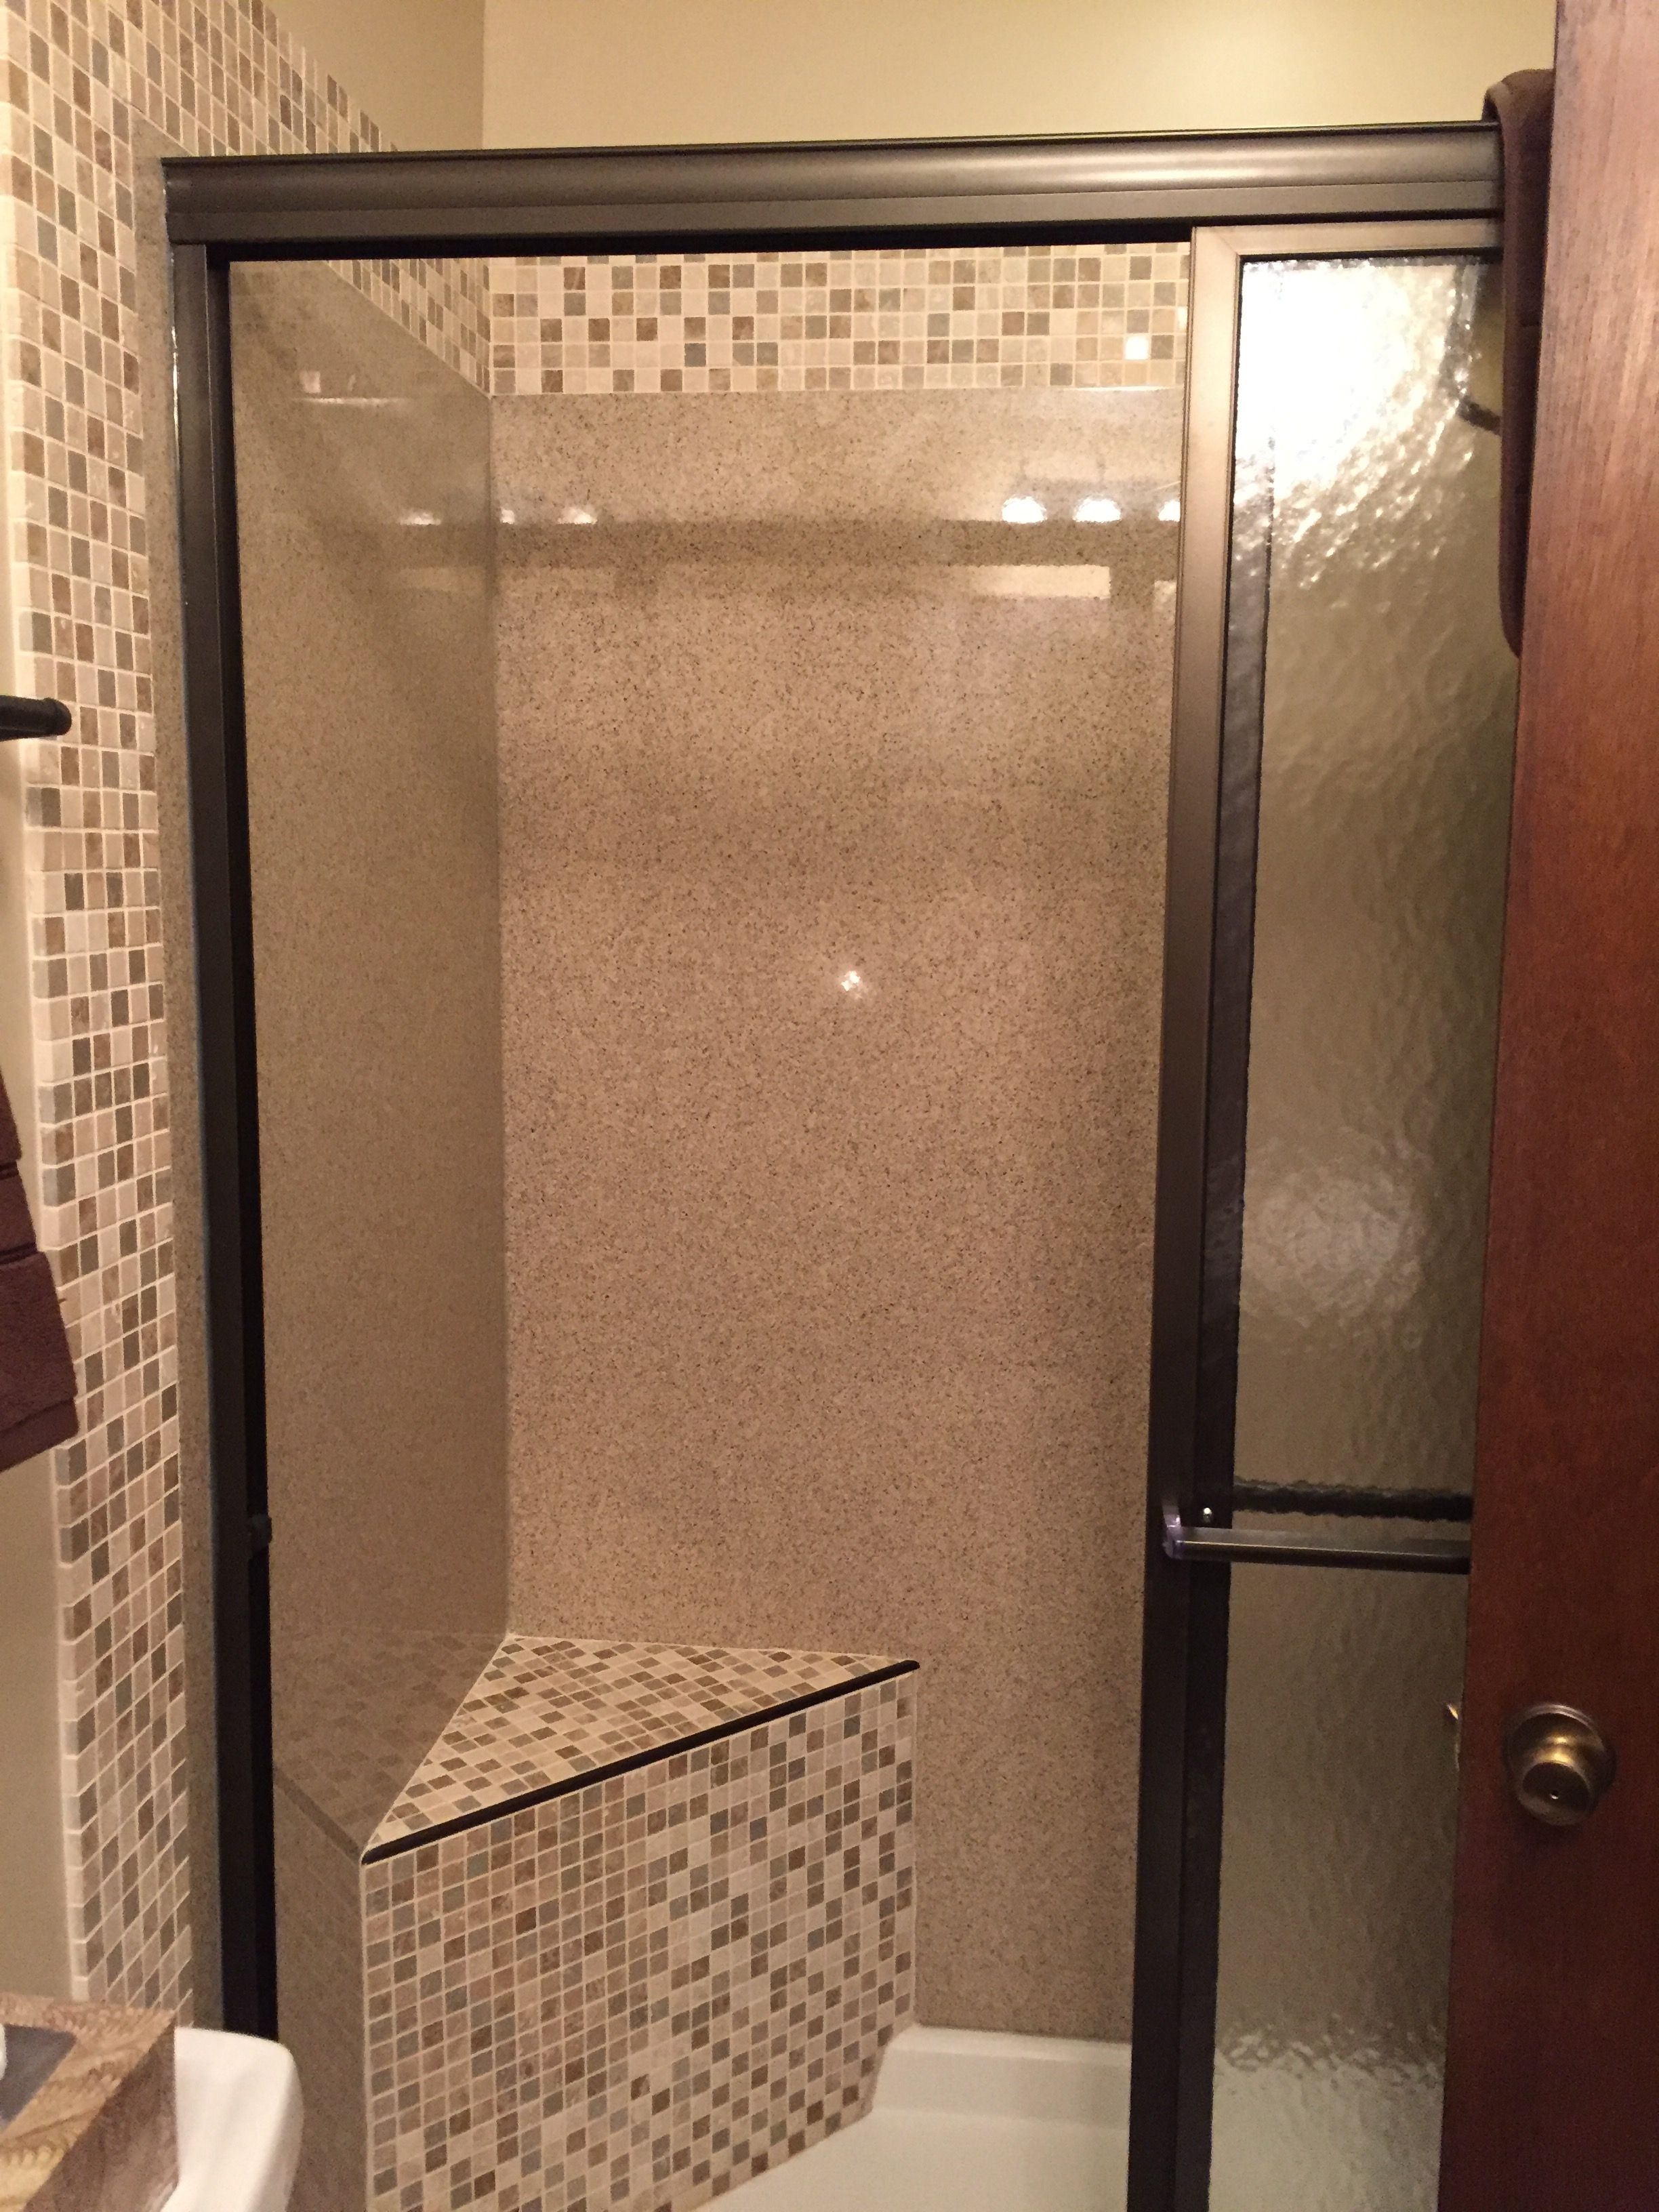 Us Marble Shower Base Walls Accent With Tile Selected By The